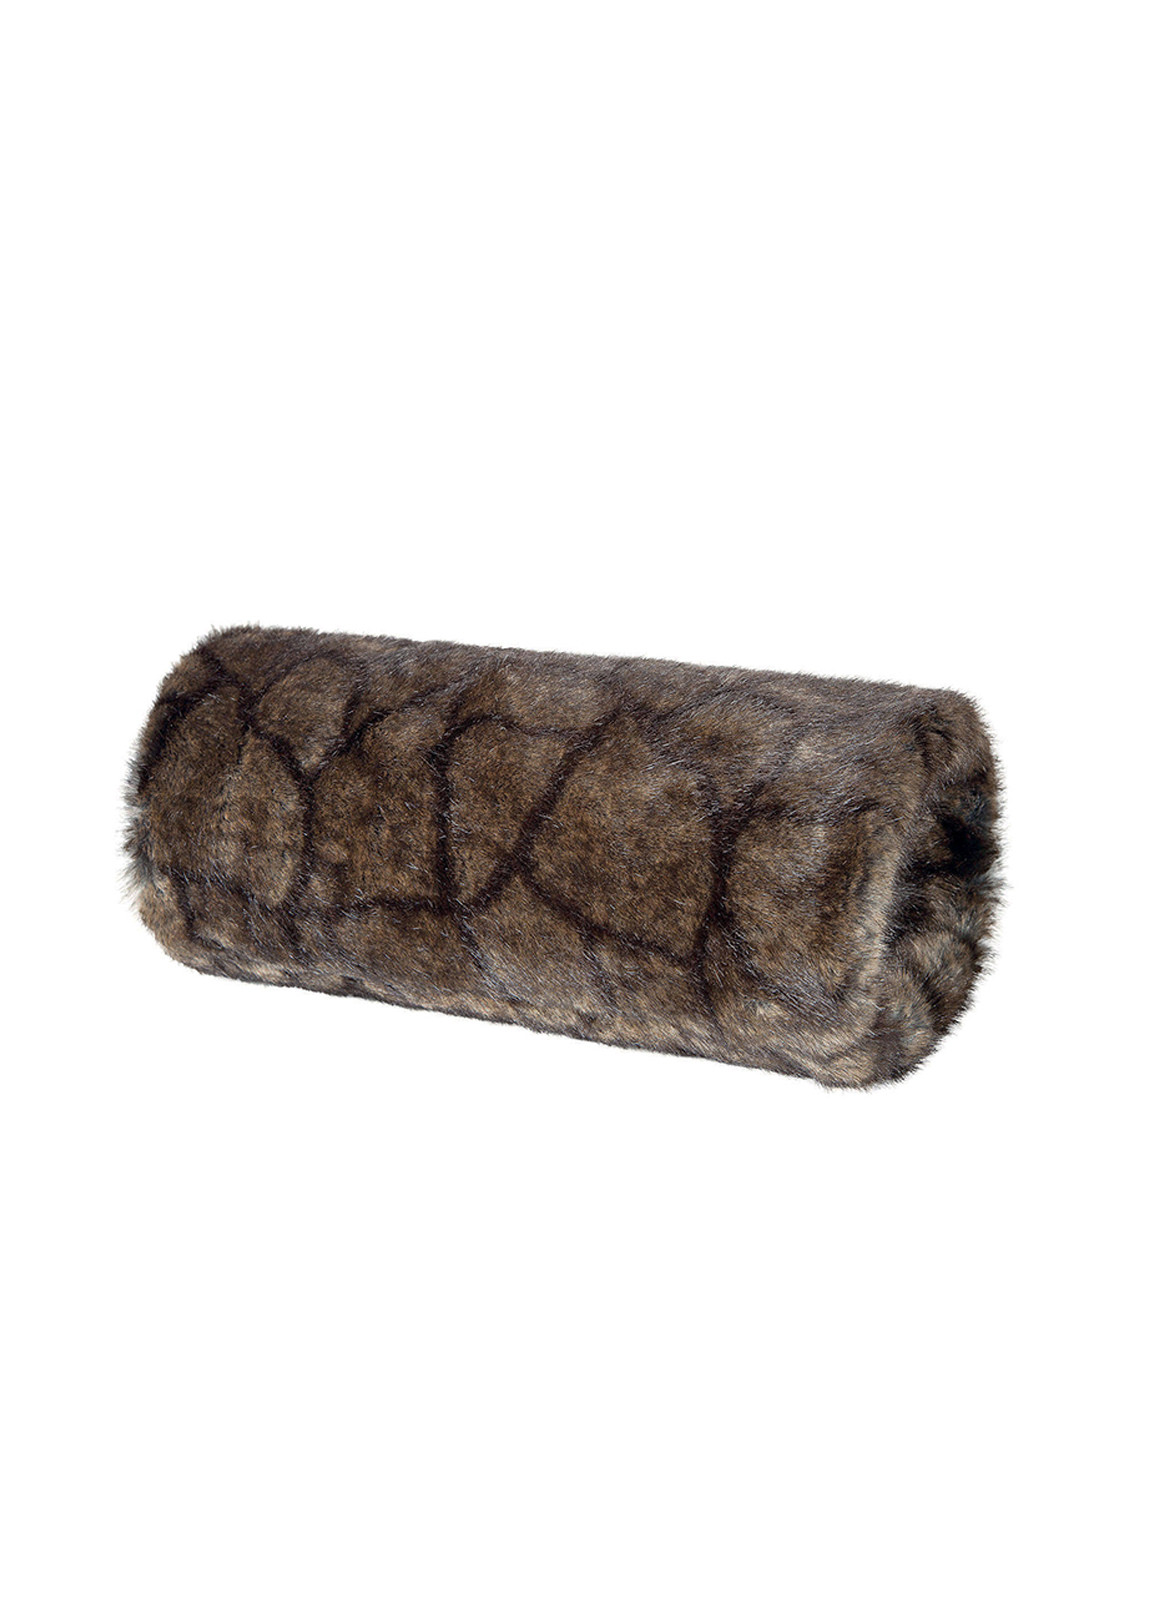 Dubarry_Swords Faux Fur Muff - Elk_Image_2